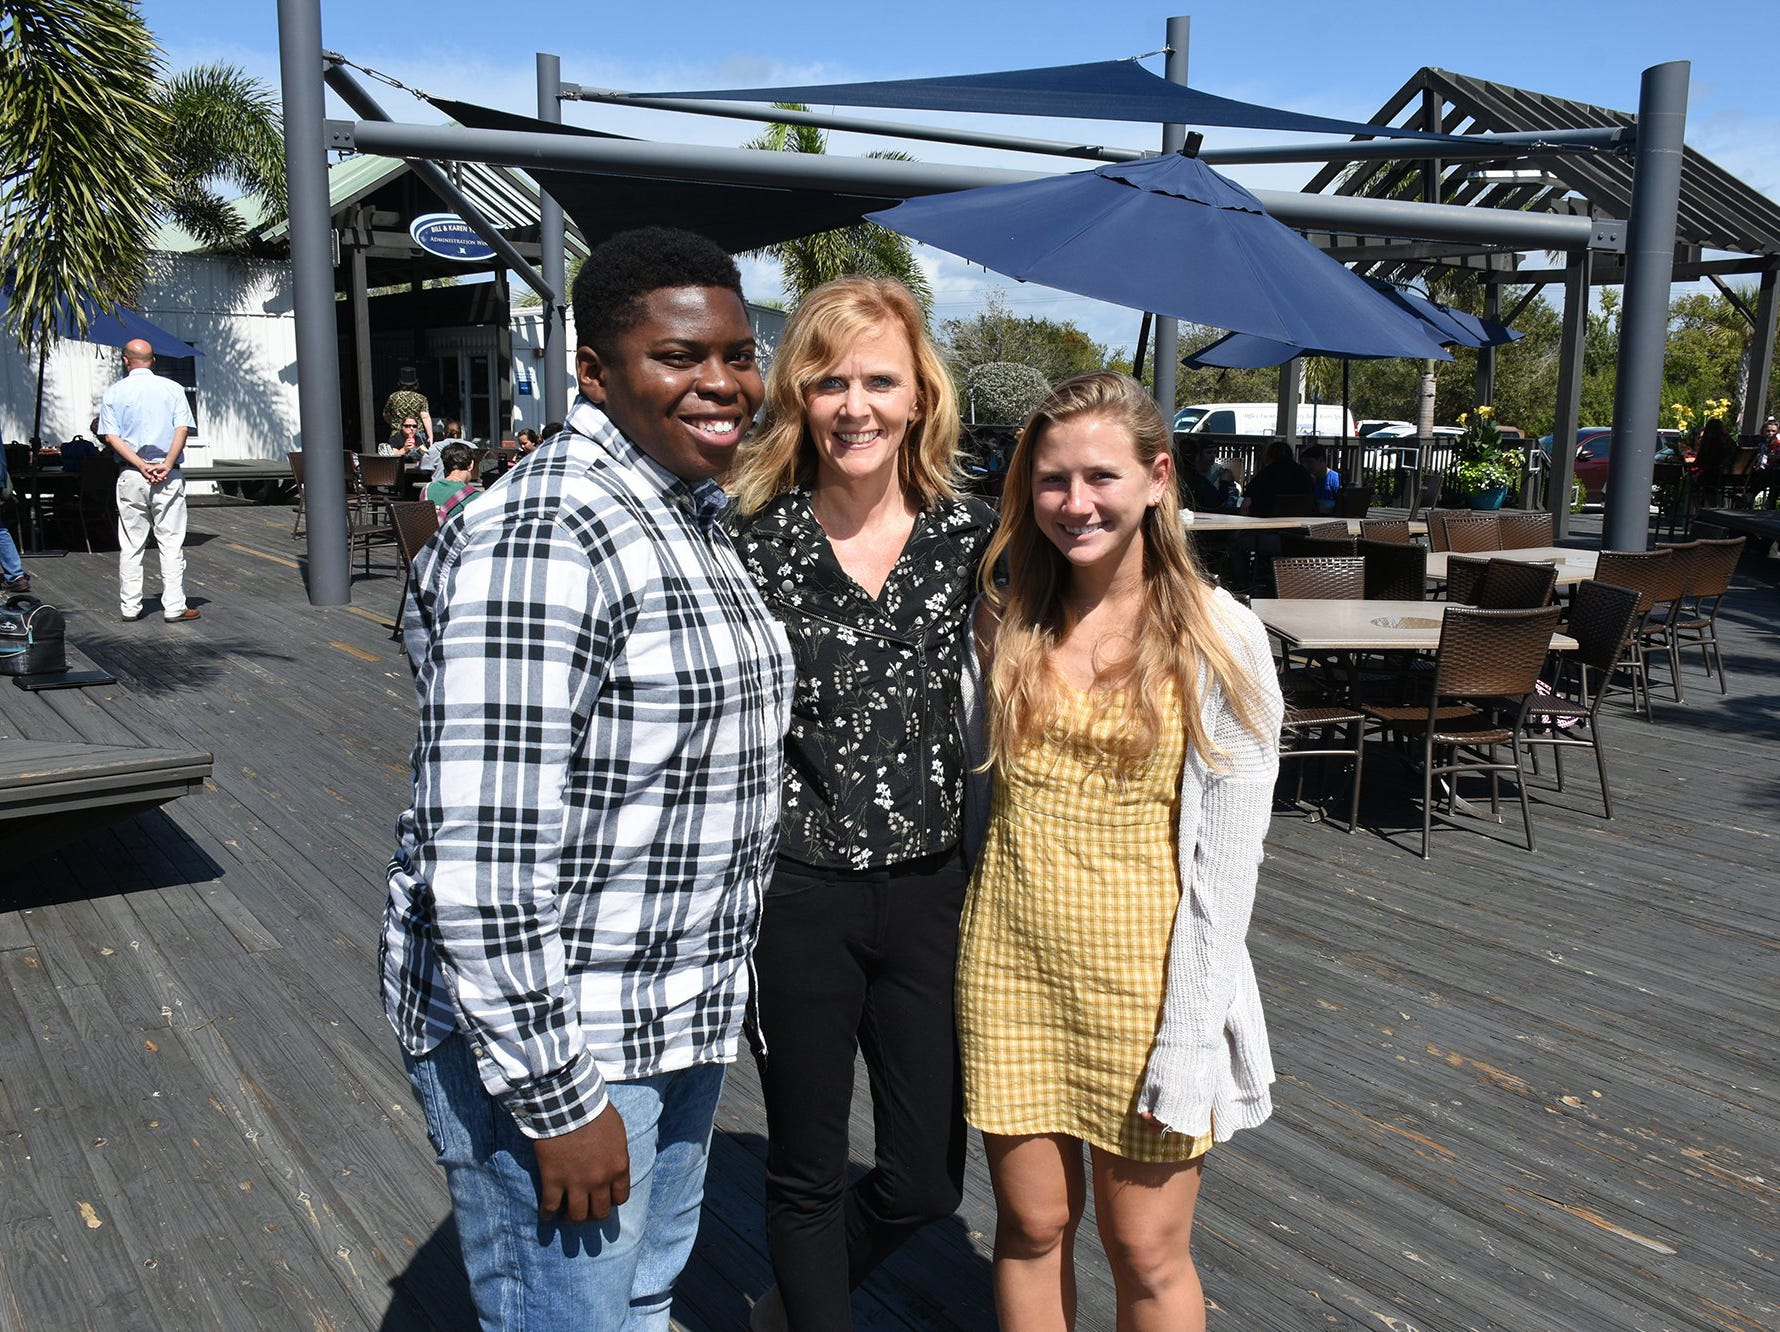 Principal Melissa Scott with students Teagan Havemeier and Evans Metelus, left. Marco Island Academy is embarking on a capital campaign to raise millions of dollars and give the school a permanent home, after years of operating in prefab modules.